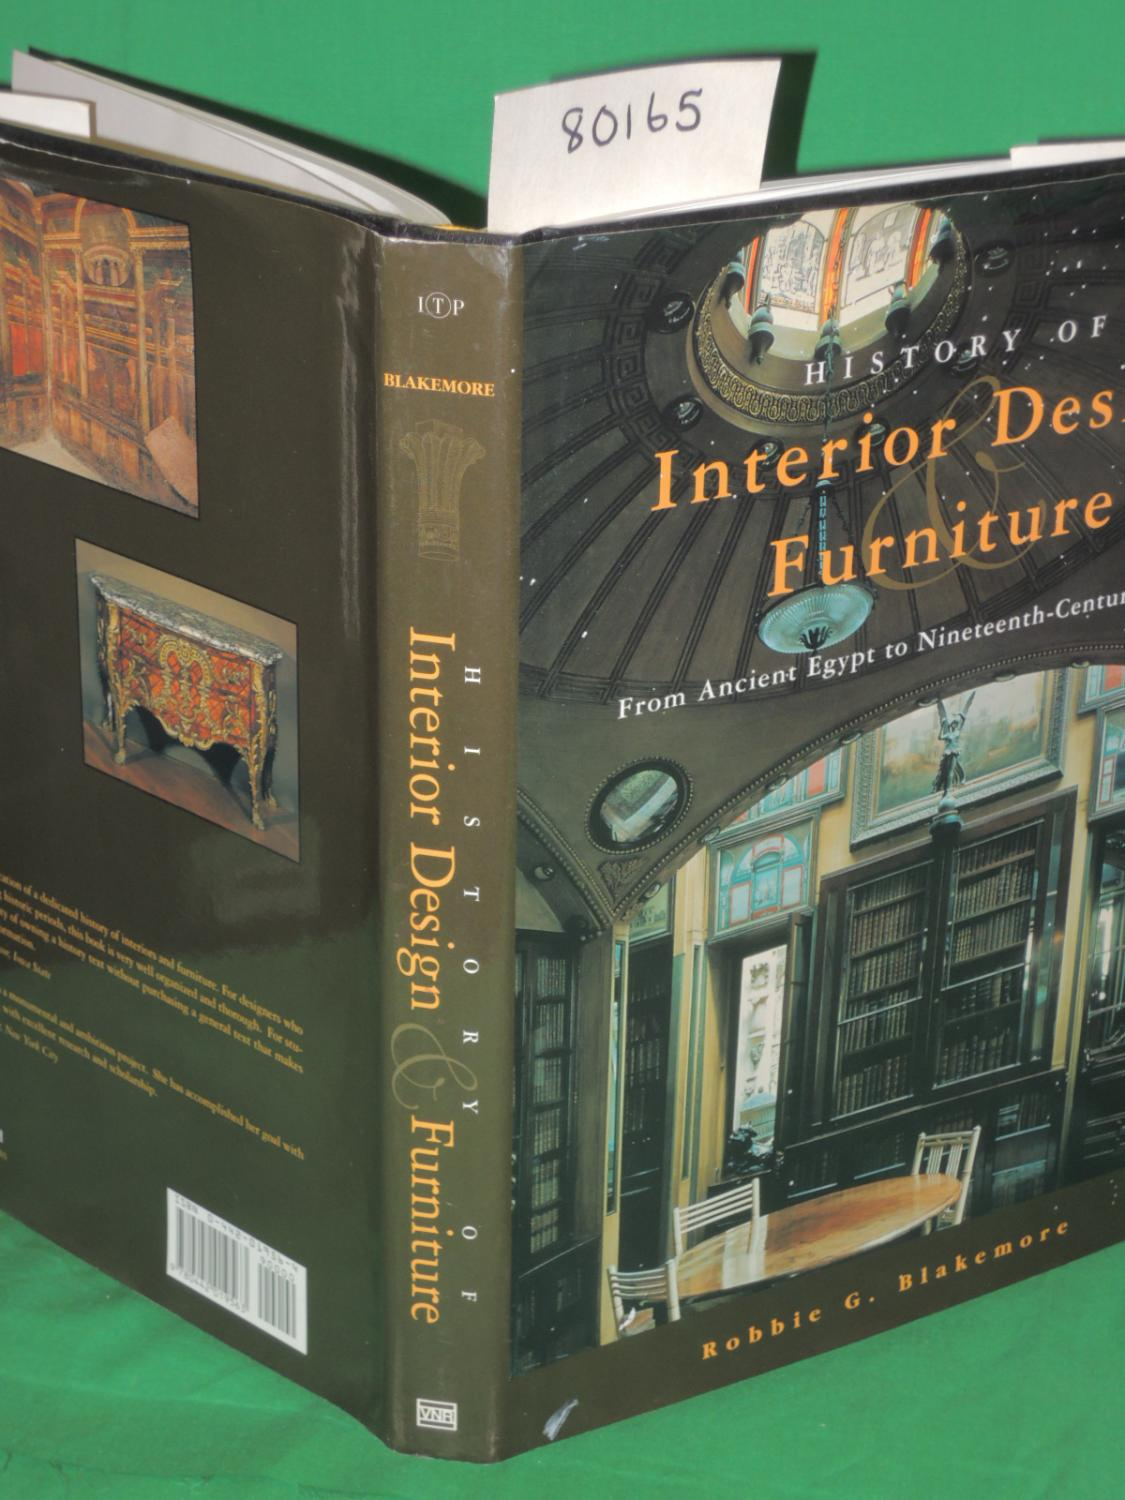 74 History Of Interior Design And Furniture By Robbie